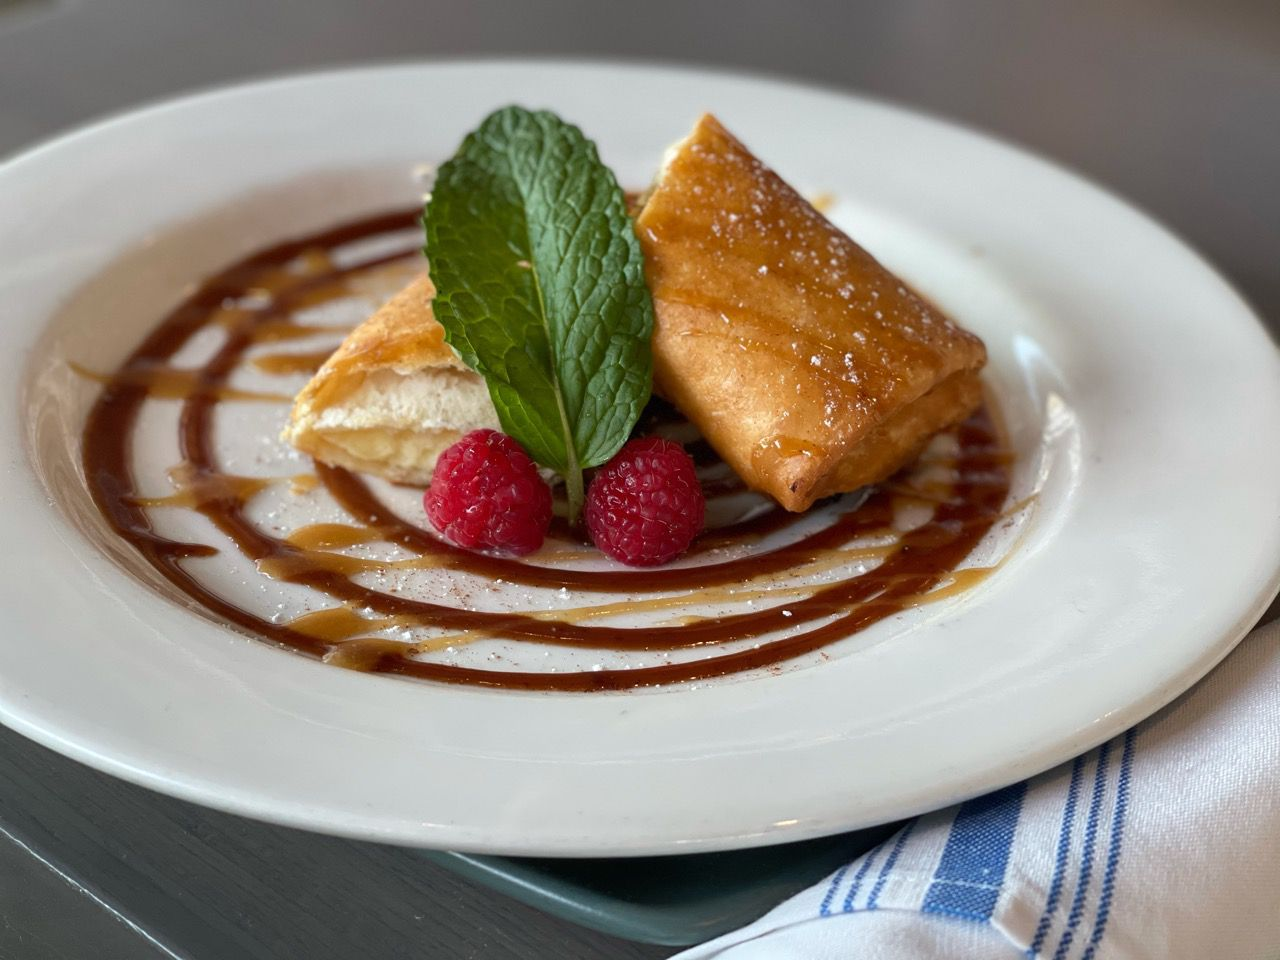 Miriam Cocina Latina offers the cheesecake burrito   creamy cheesecake rolled in flour tortillas and toasted with spicy chocolate and caramel sauce with cinnamon sugar as part of its Valentine's Day offerings this year.